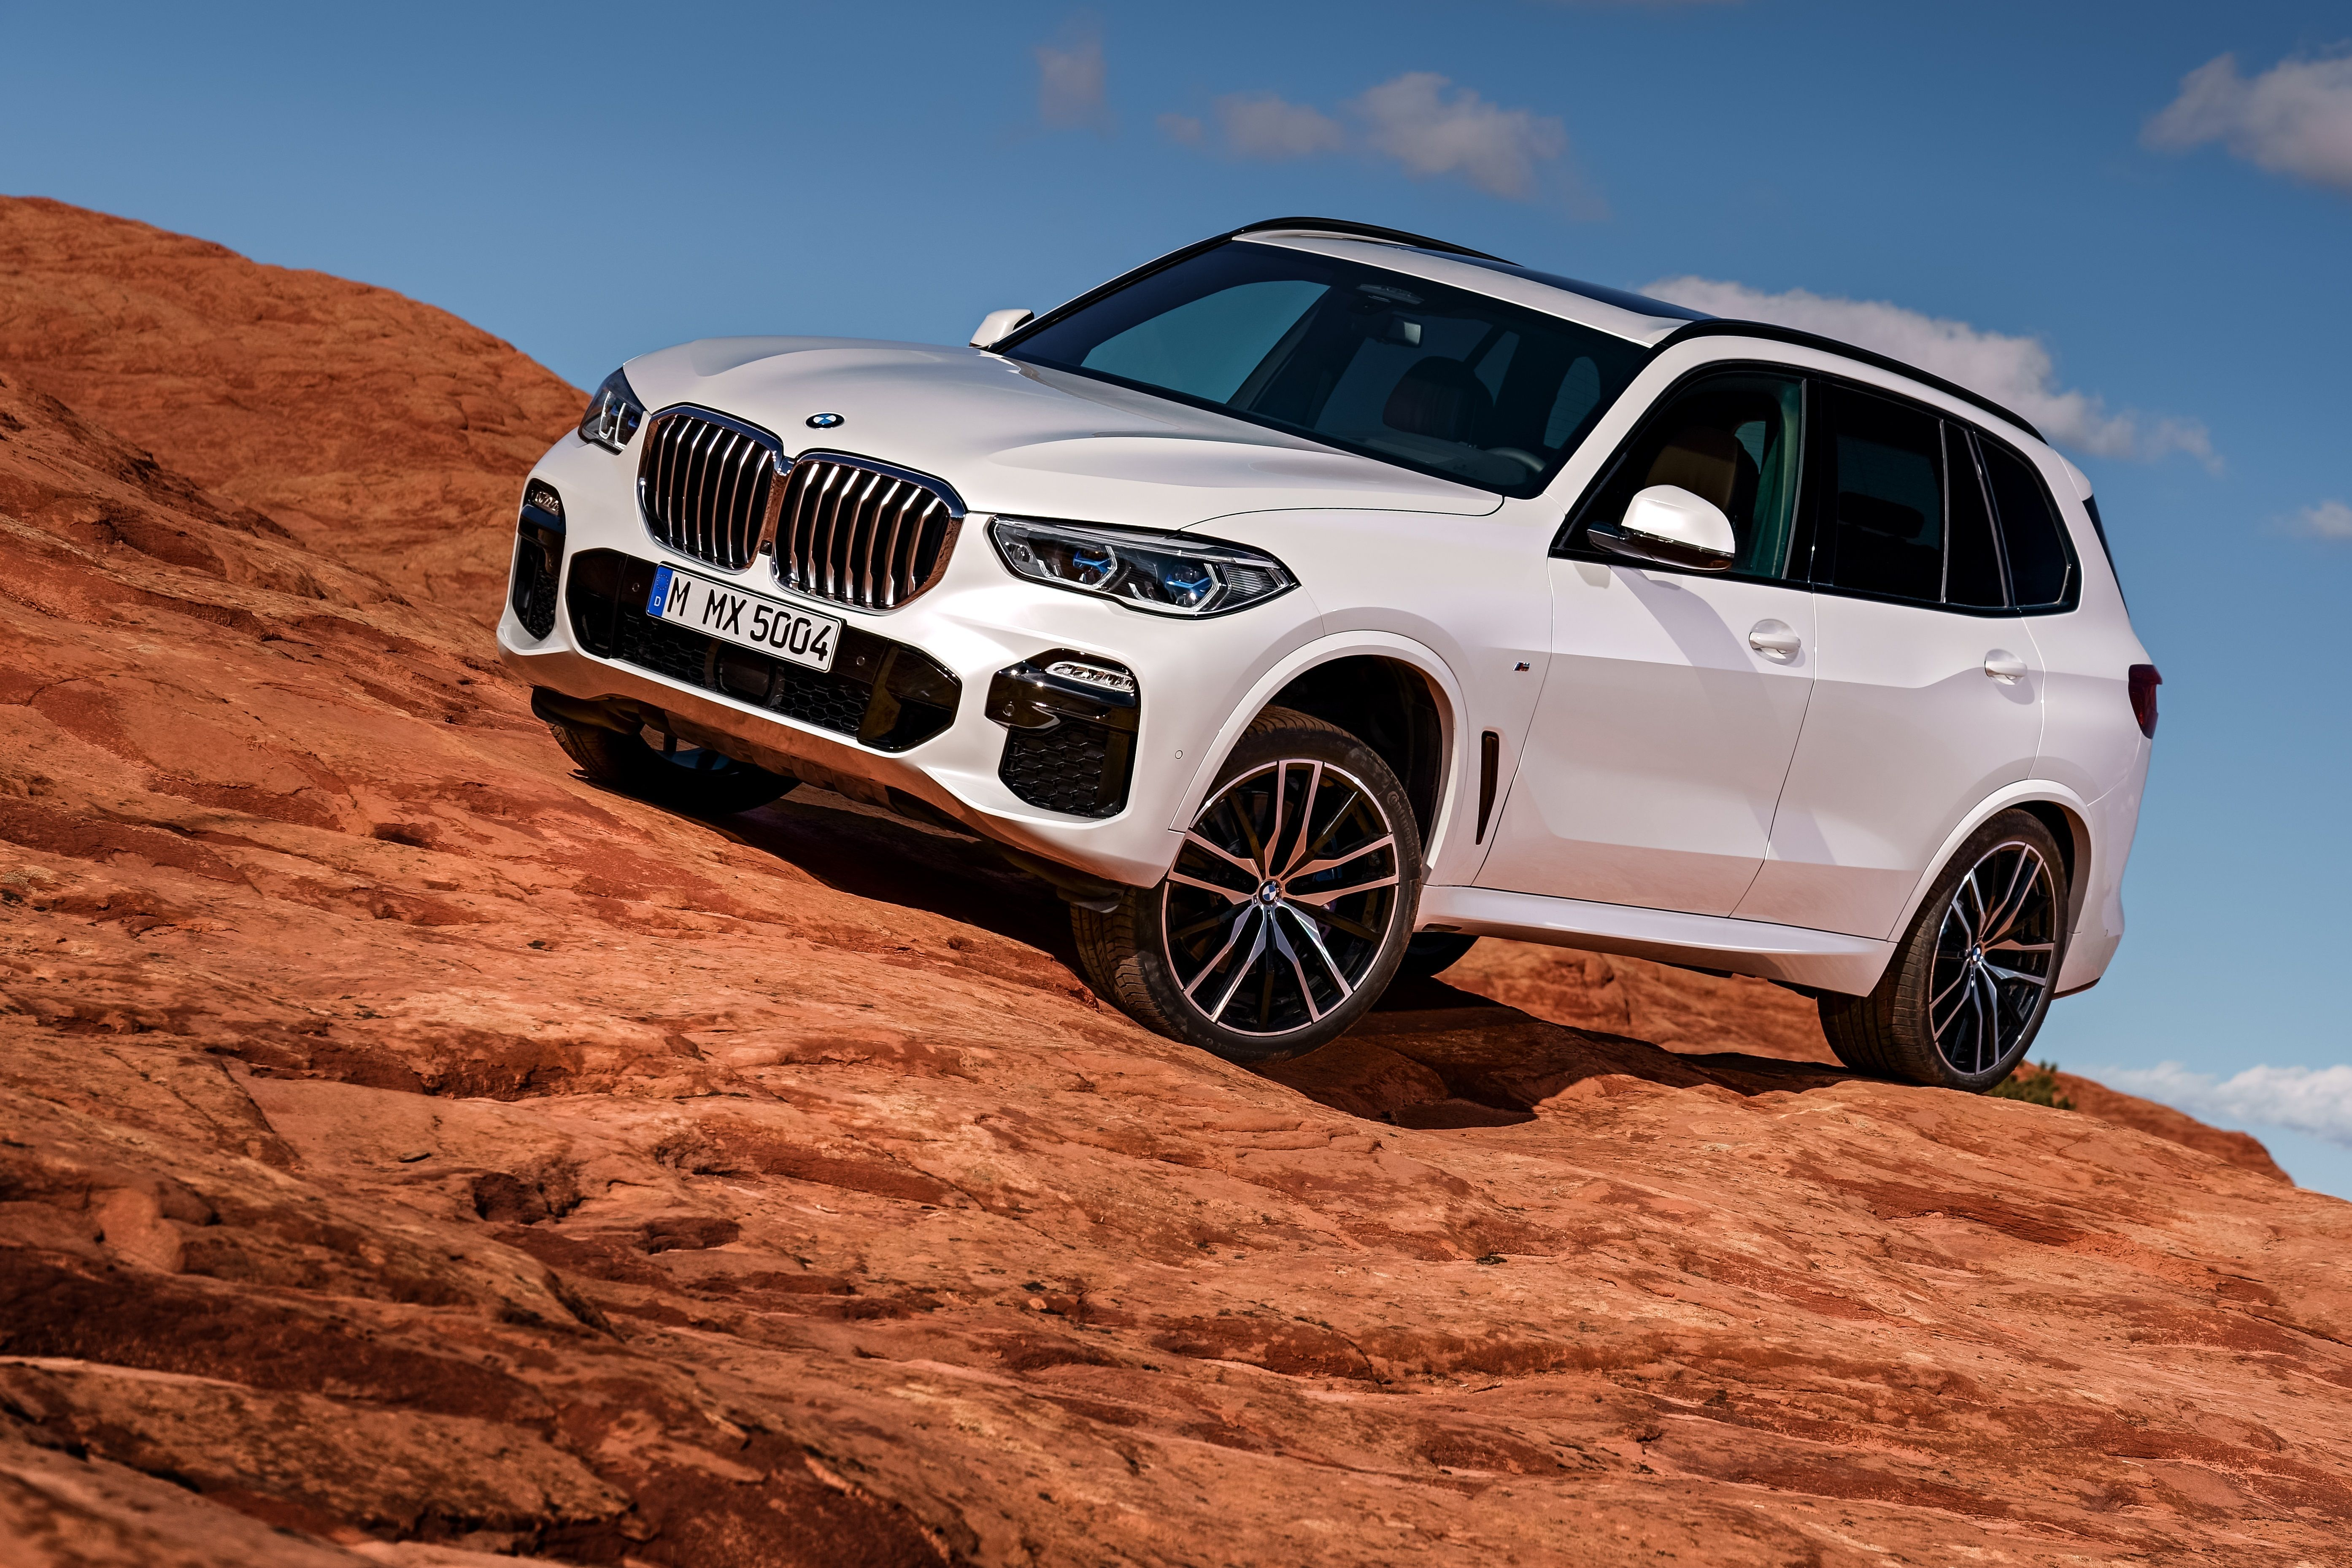 Bmw G05 X5 Xdrive30d Sav Mperformamce Mpackage Xline Sheerdrivingpleasure Badass Monster Muscle Outdoor Offroad Provoc Bmw Bmw X5 Dream Cars Bmw